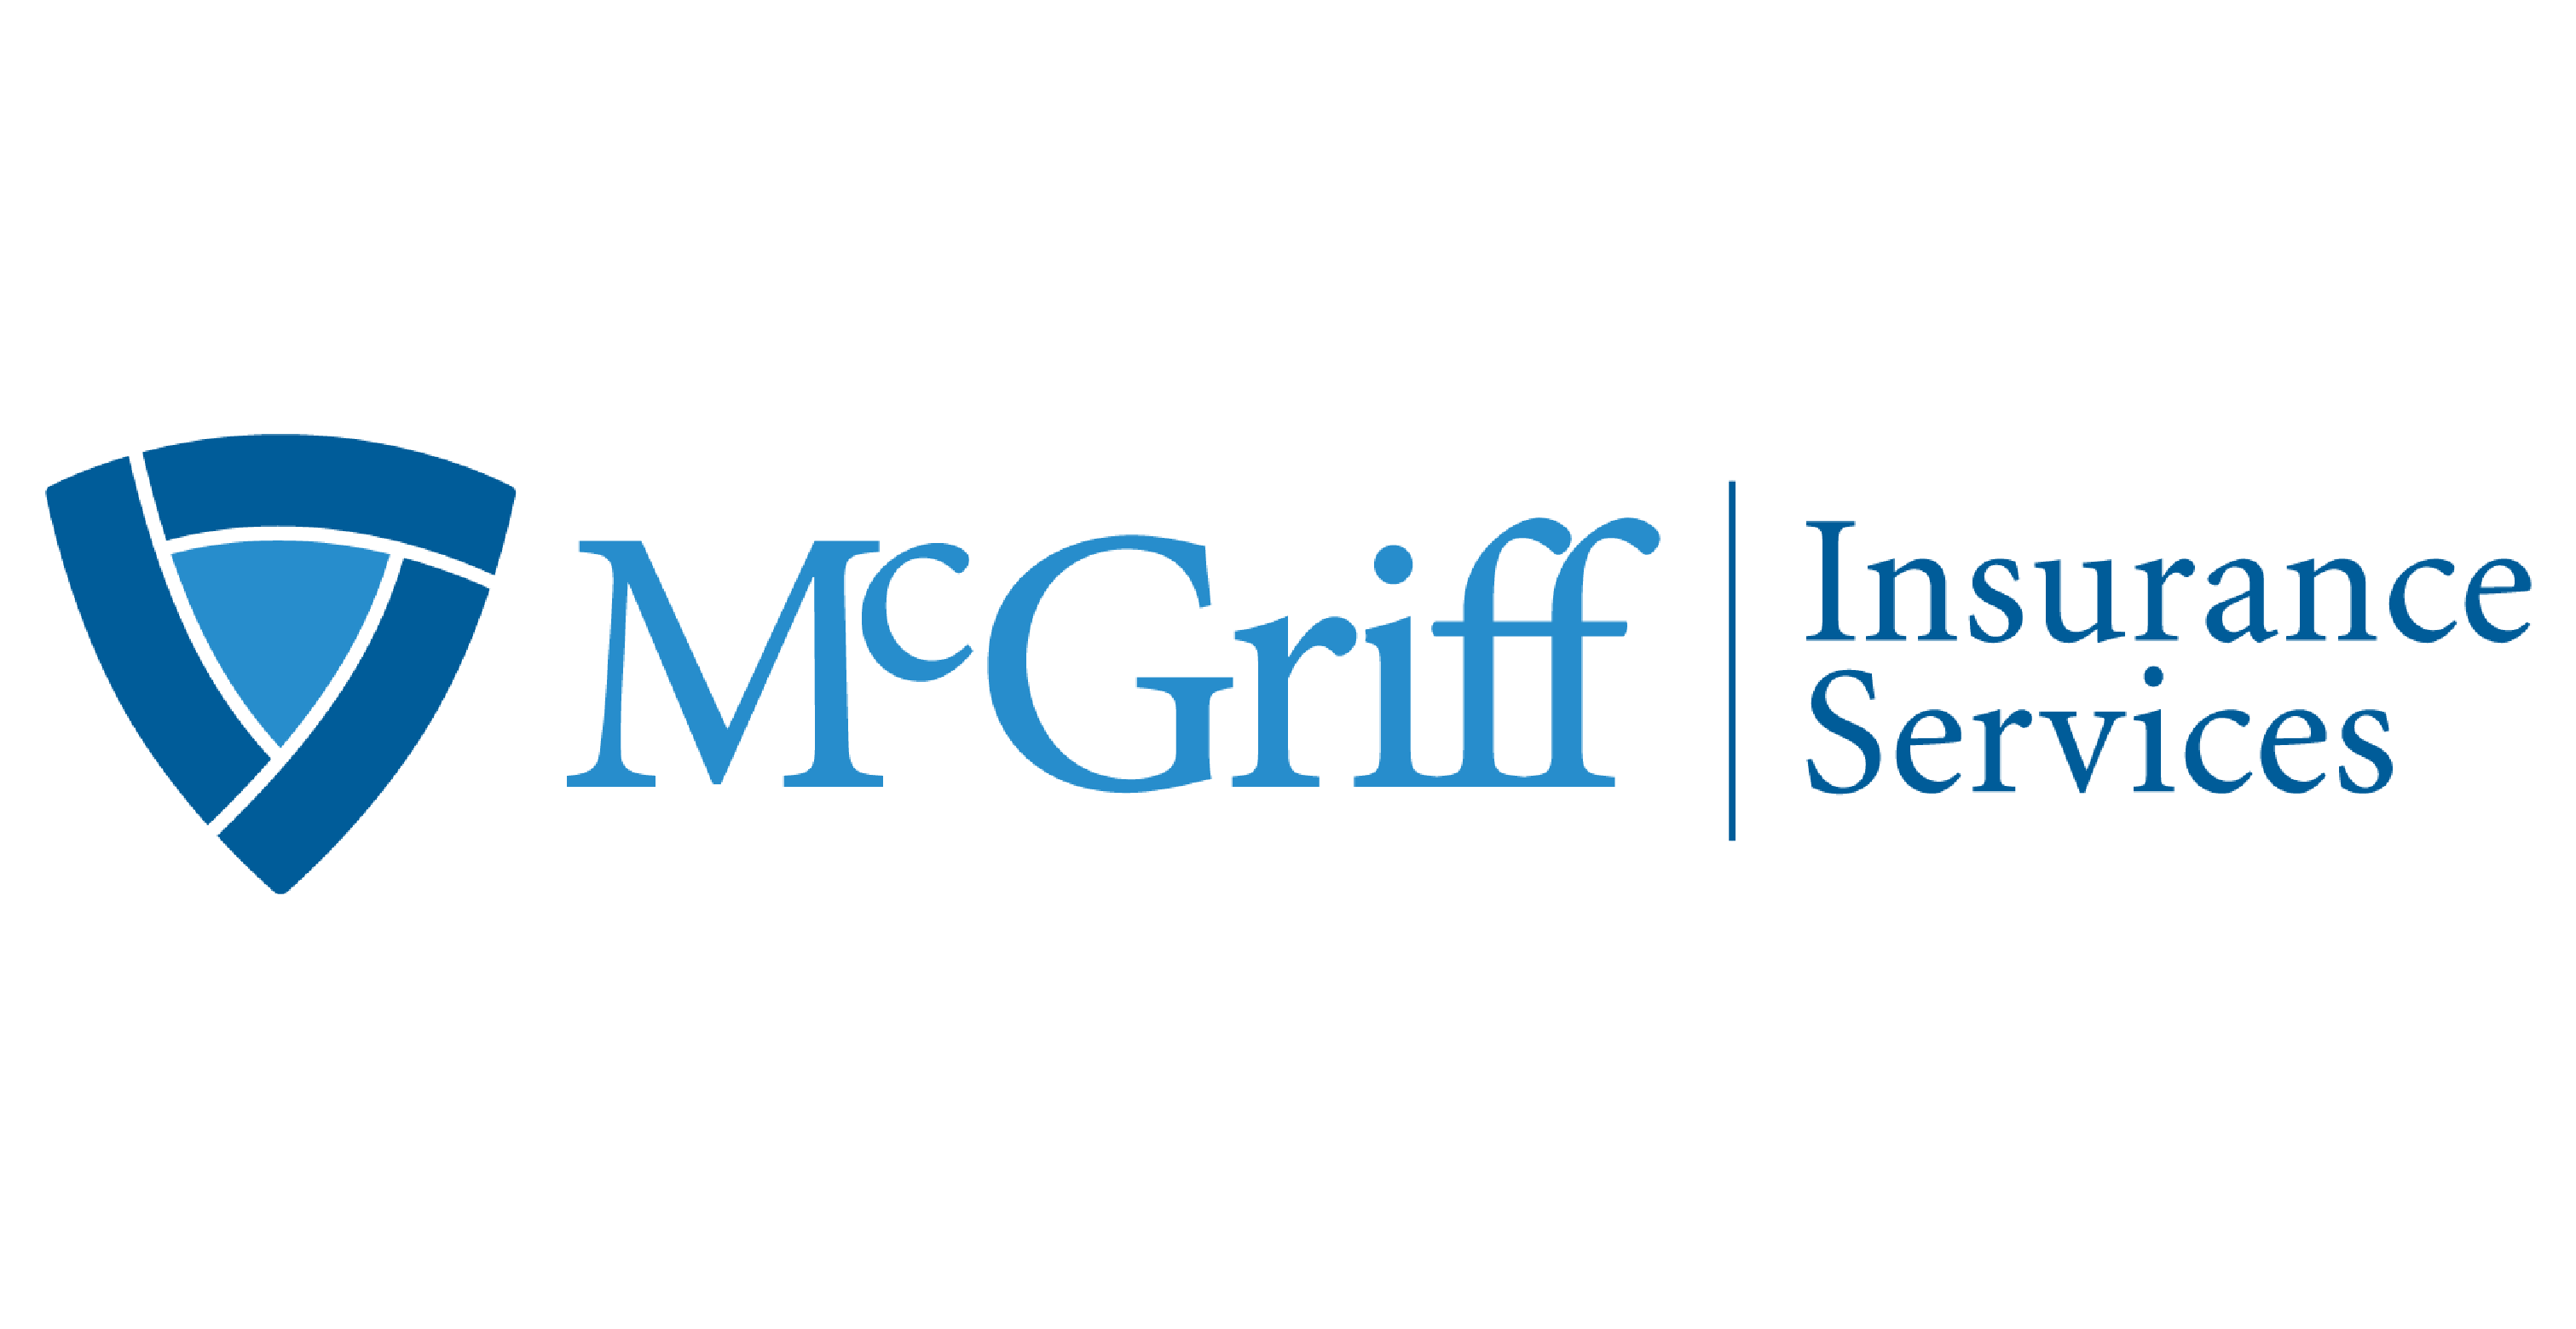 McGriff Insurance Services